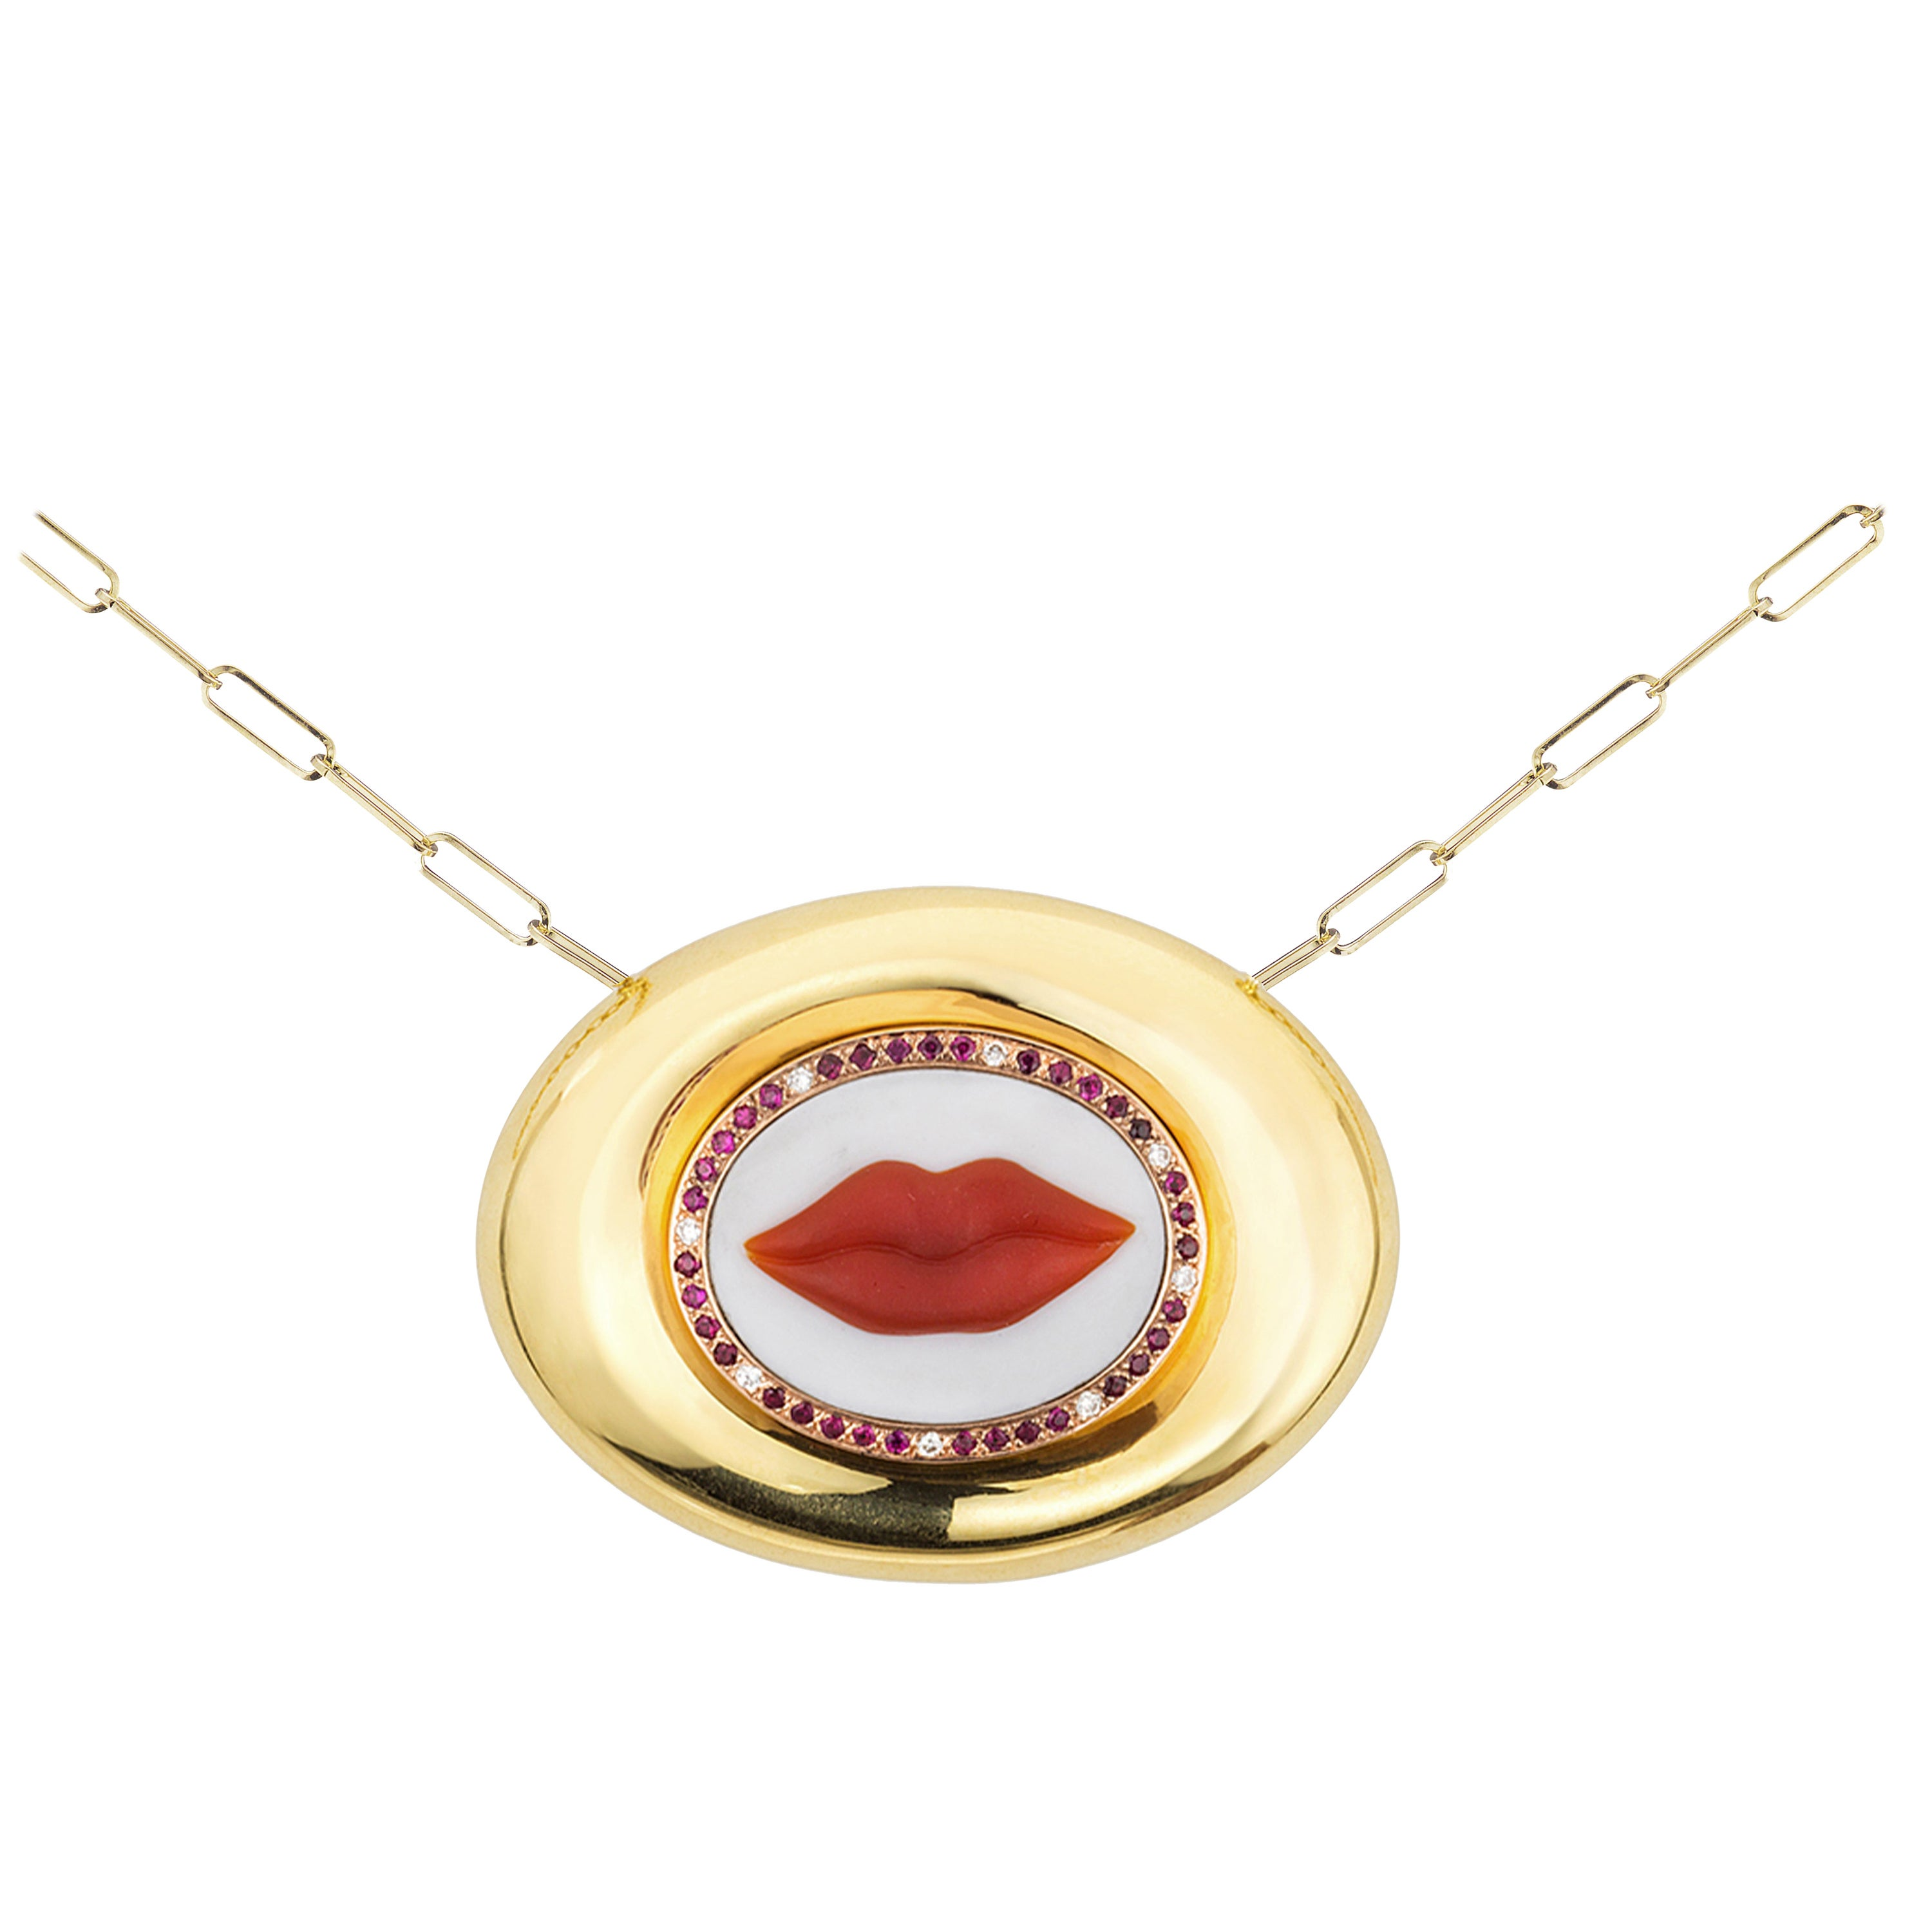 AnaKatarina Hand Carved Agate, Rose Gold, Rubies and Diamond Lips Cameo Necklace